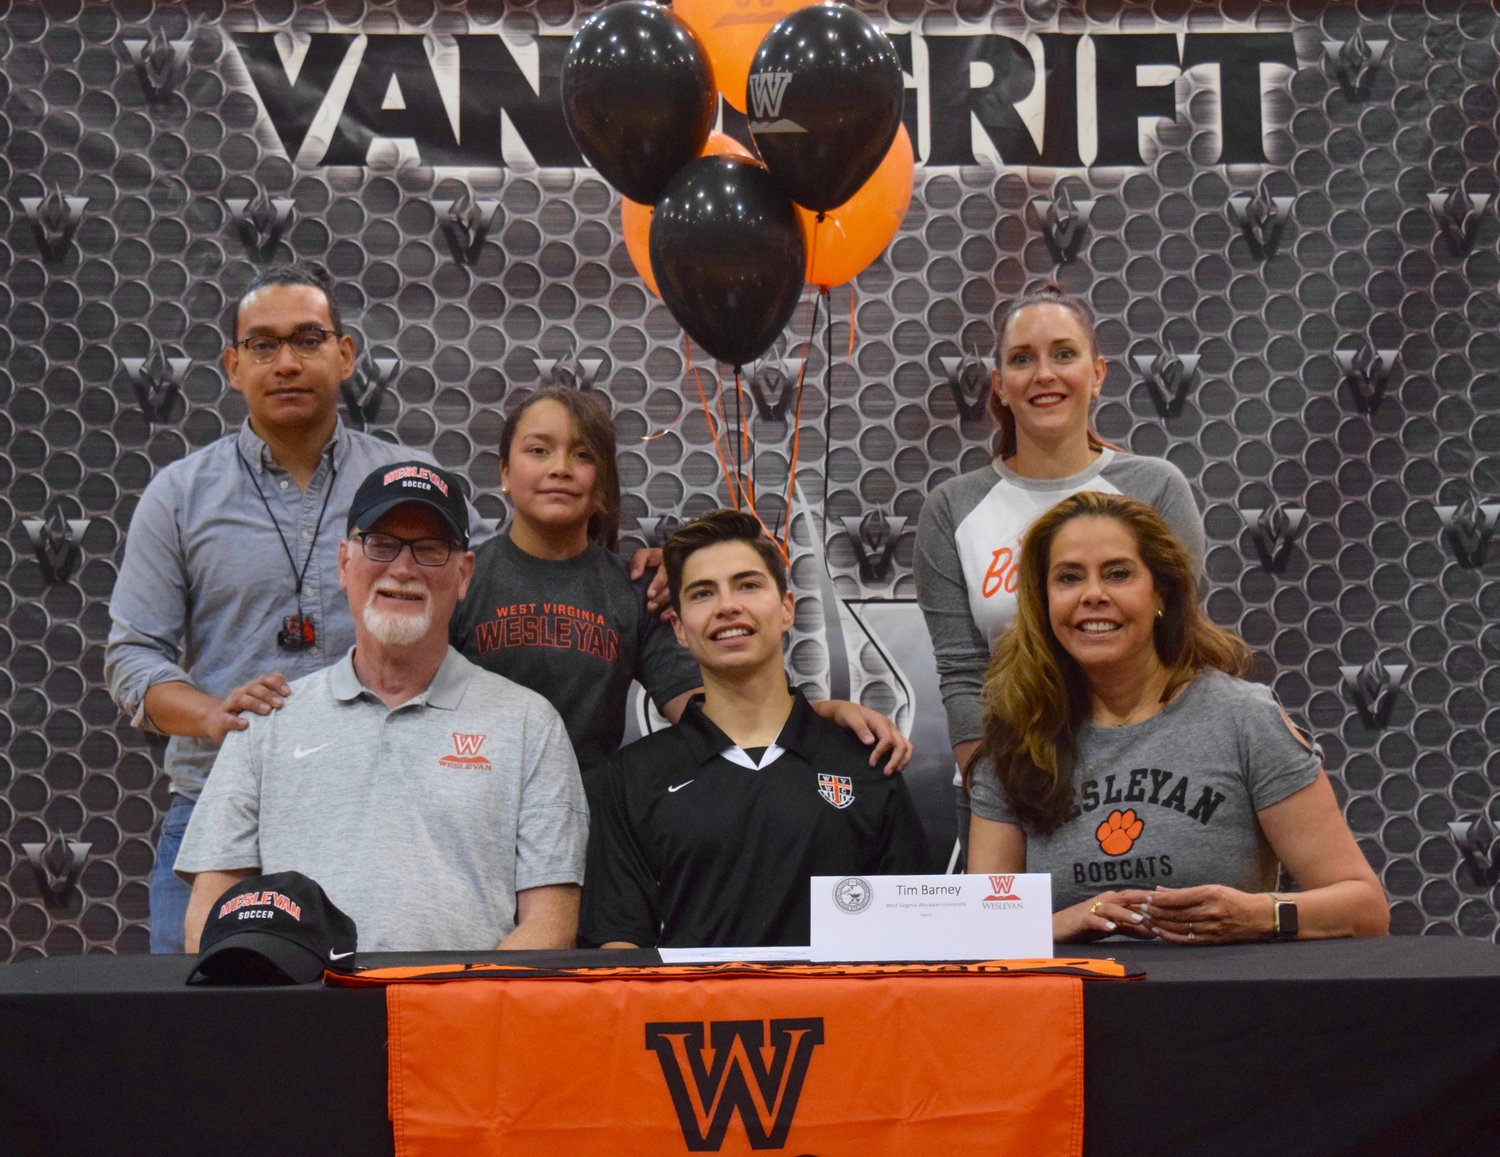 Tim Barney signed on to play soccer at Westw Virginia Wesleyan College at a signing day celebration Friday morning at Vandegrift High School.